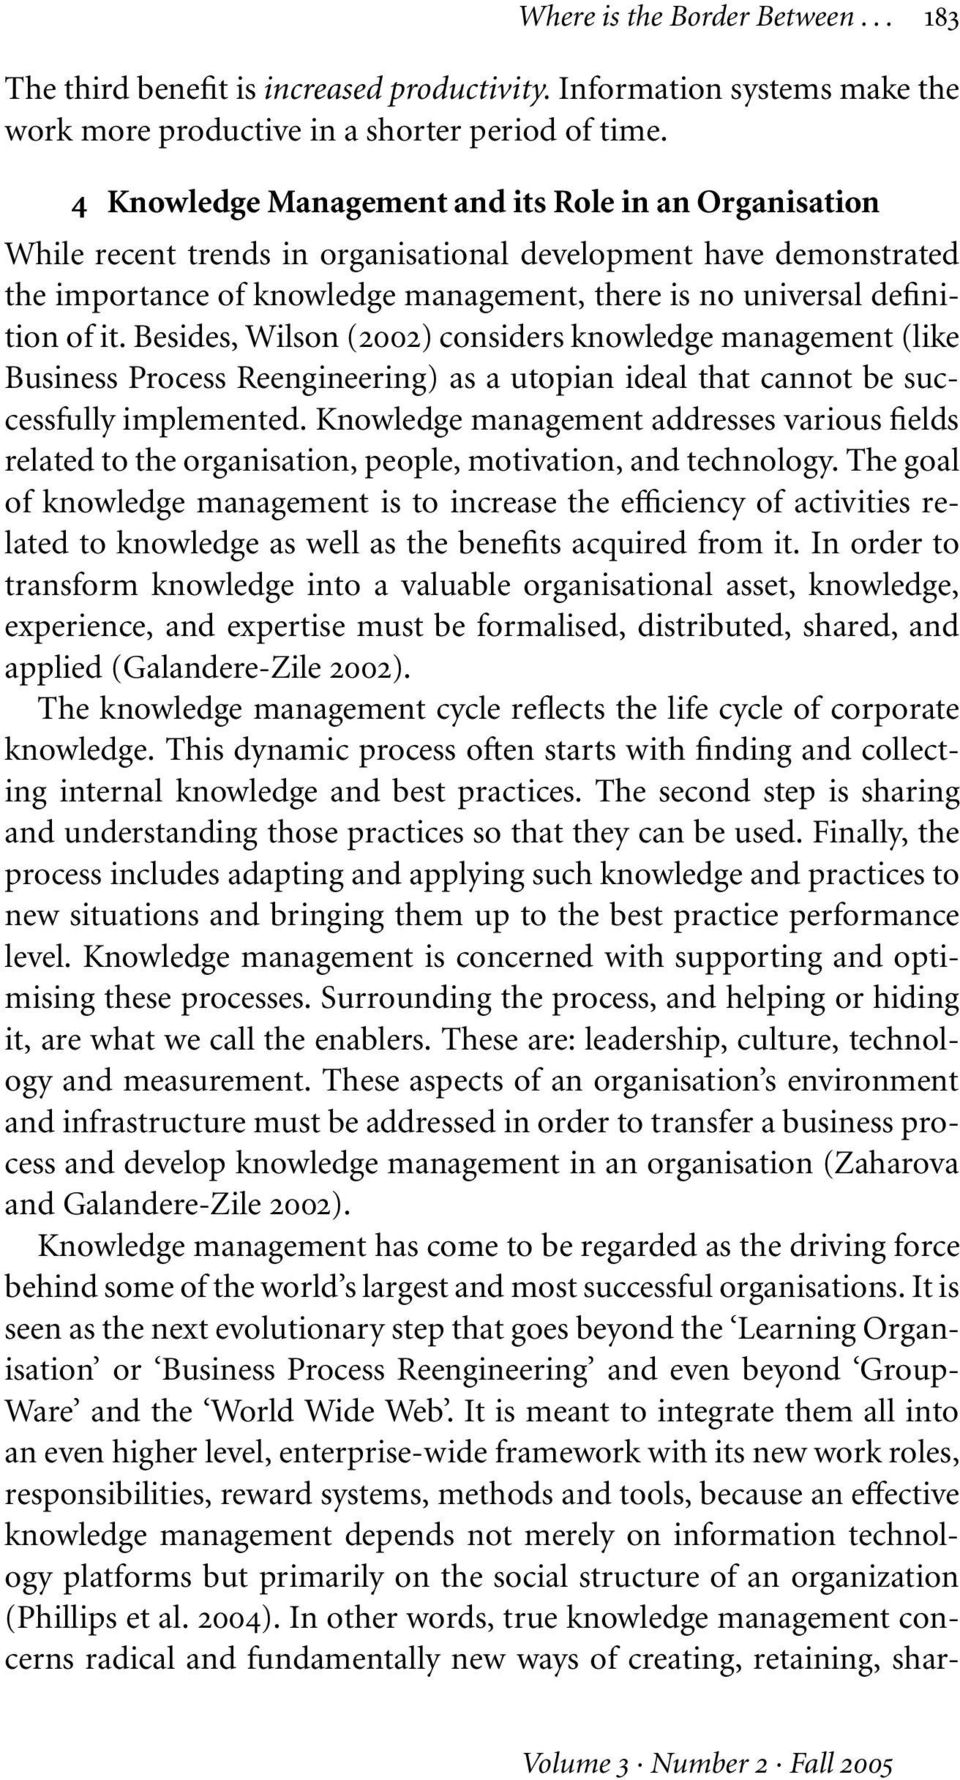 Besides, Wilson (2002) considers management (like Business Process Reengineering) as a utopian ideal that cannot be successfully implemented.